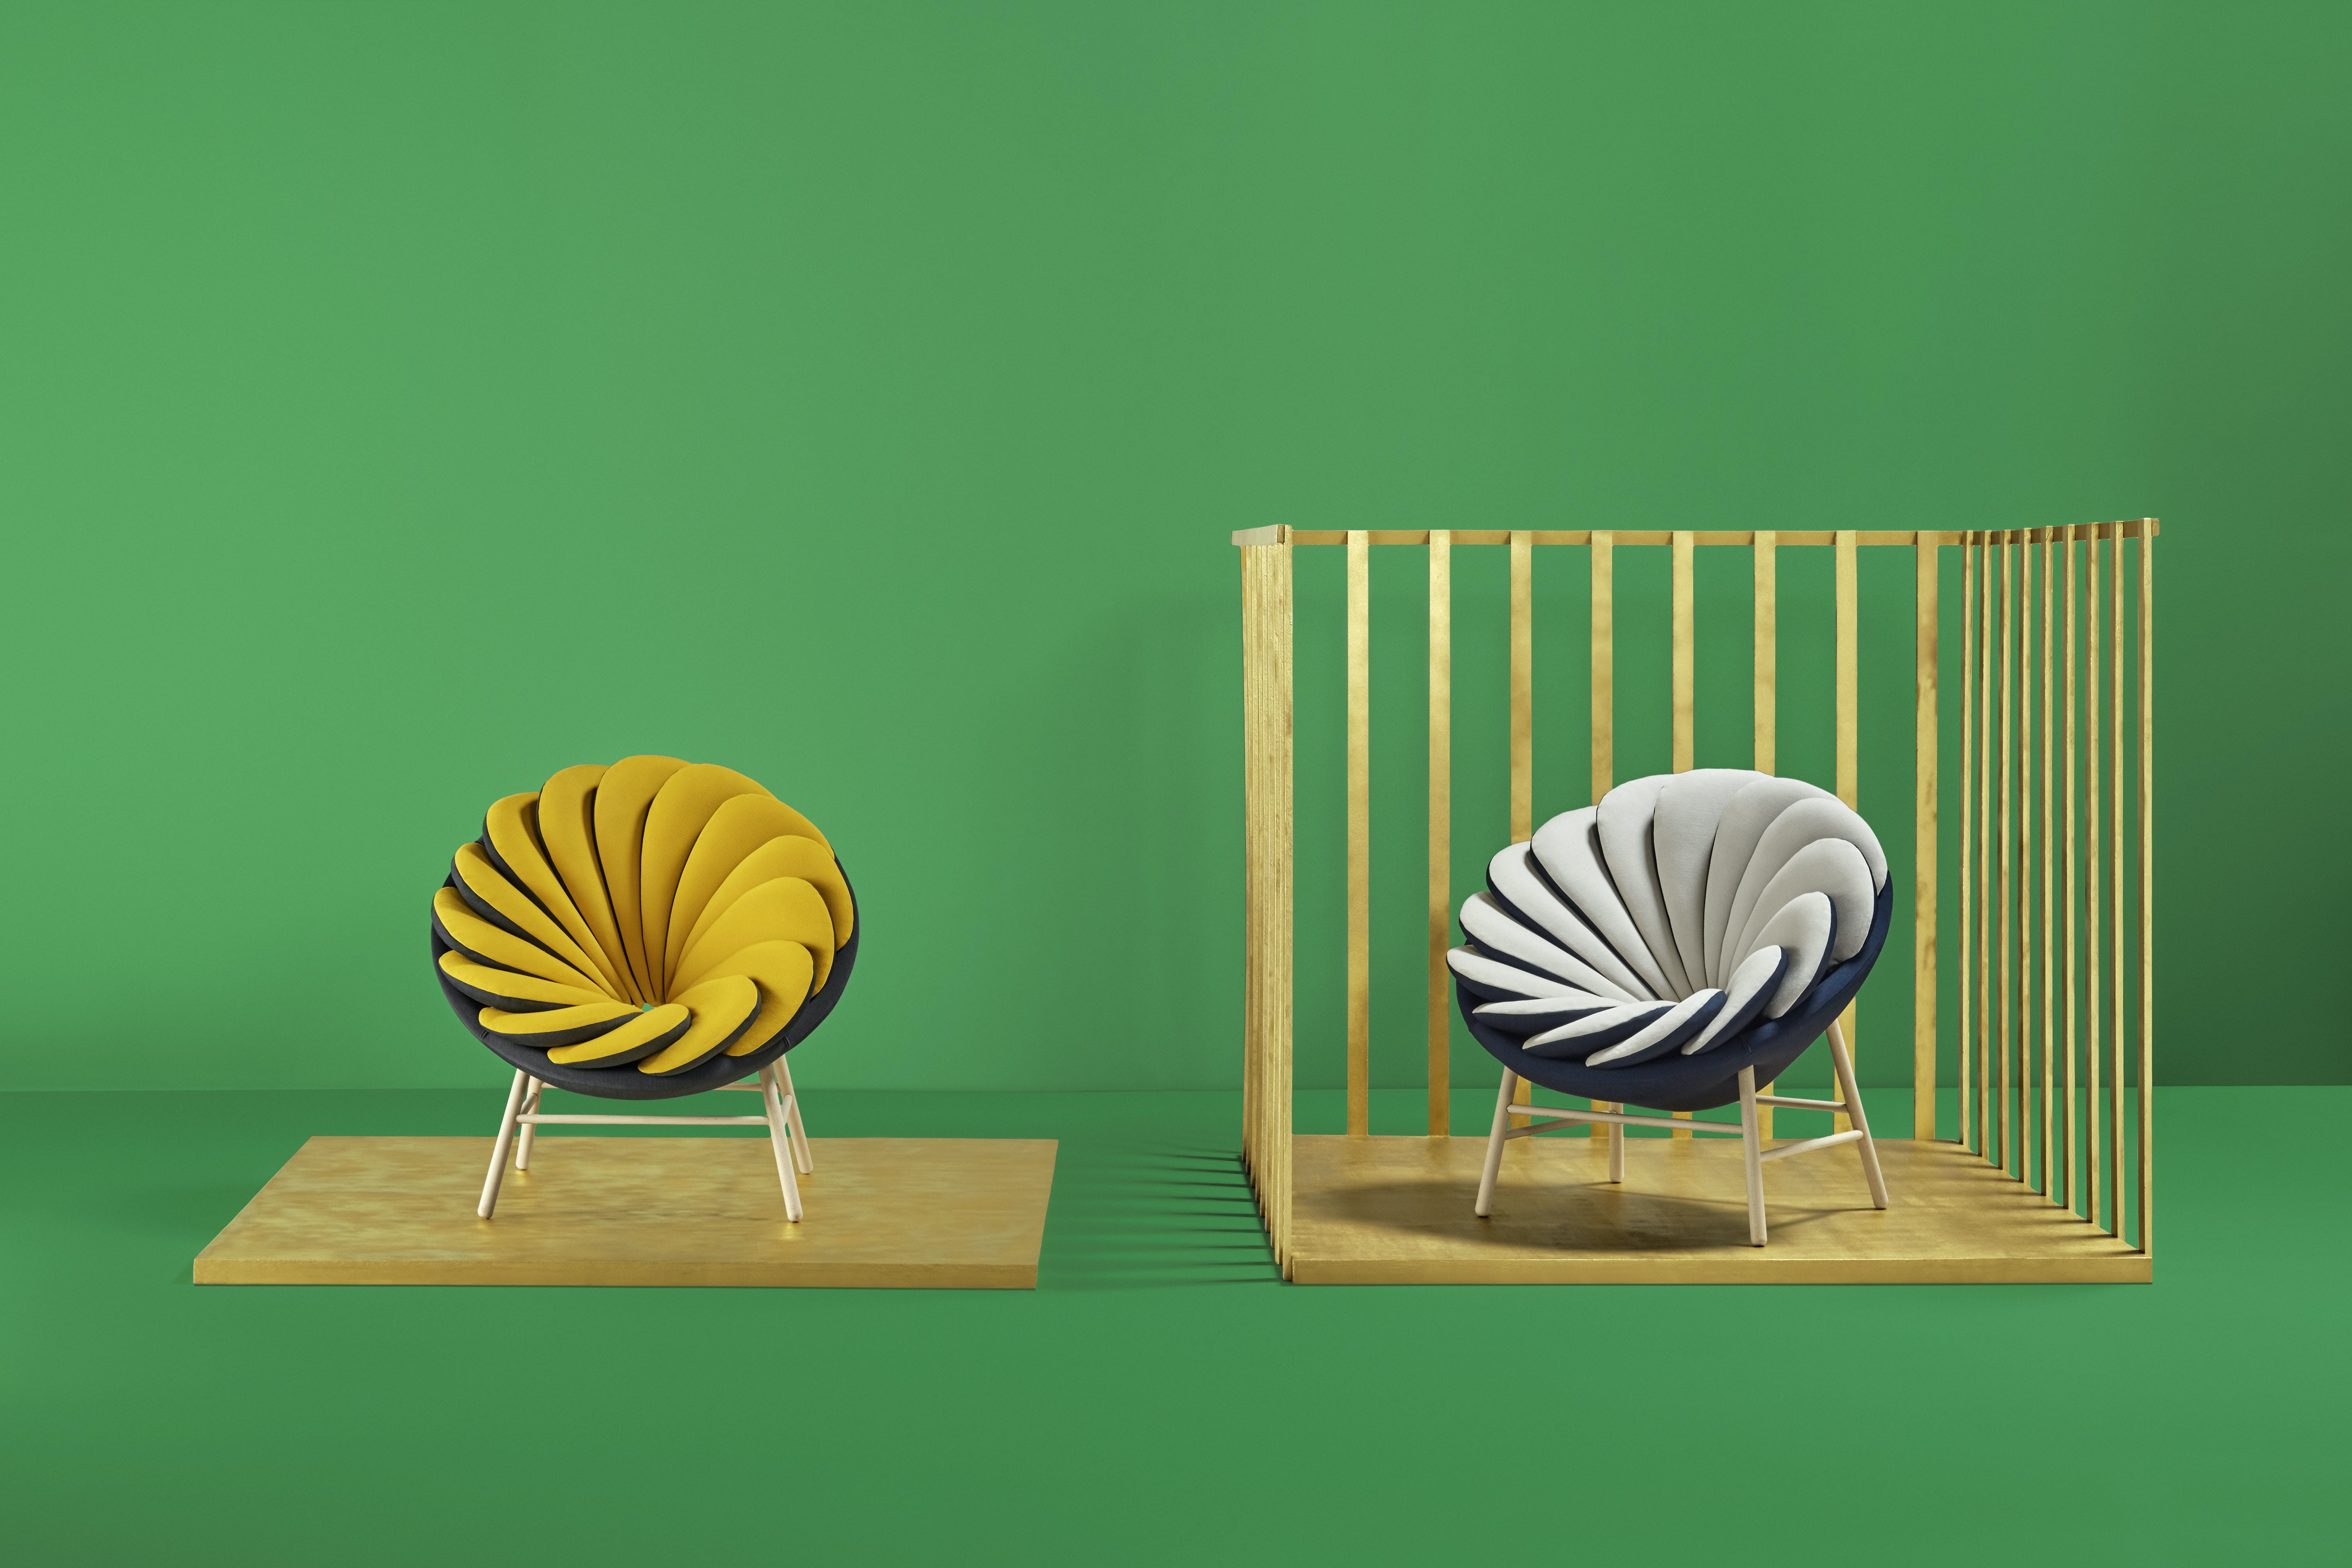 Quetzal-chair-by-missana-available-at-haute-living